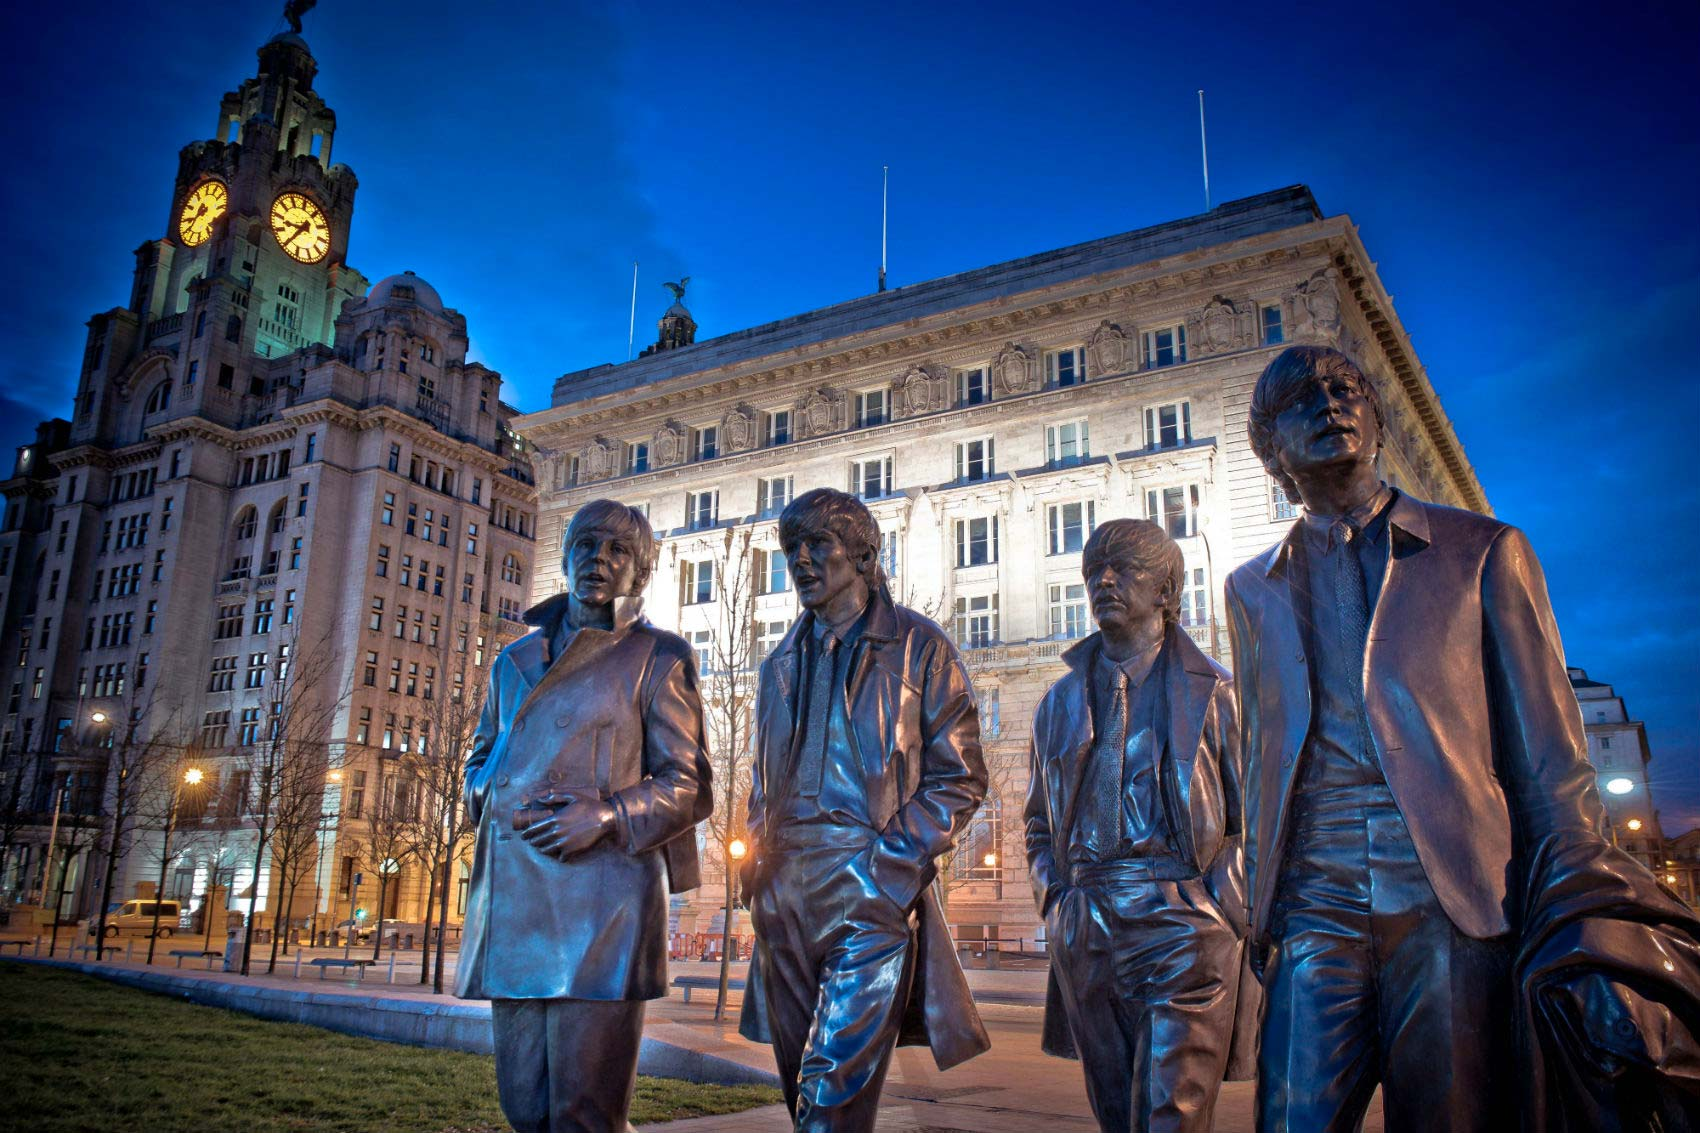 Pier Head and Beatles statues